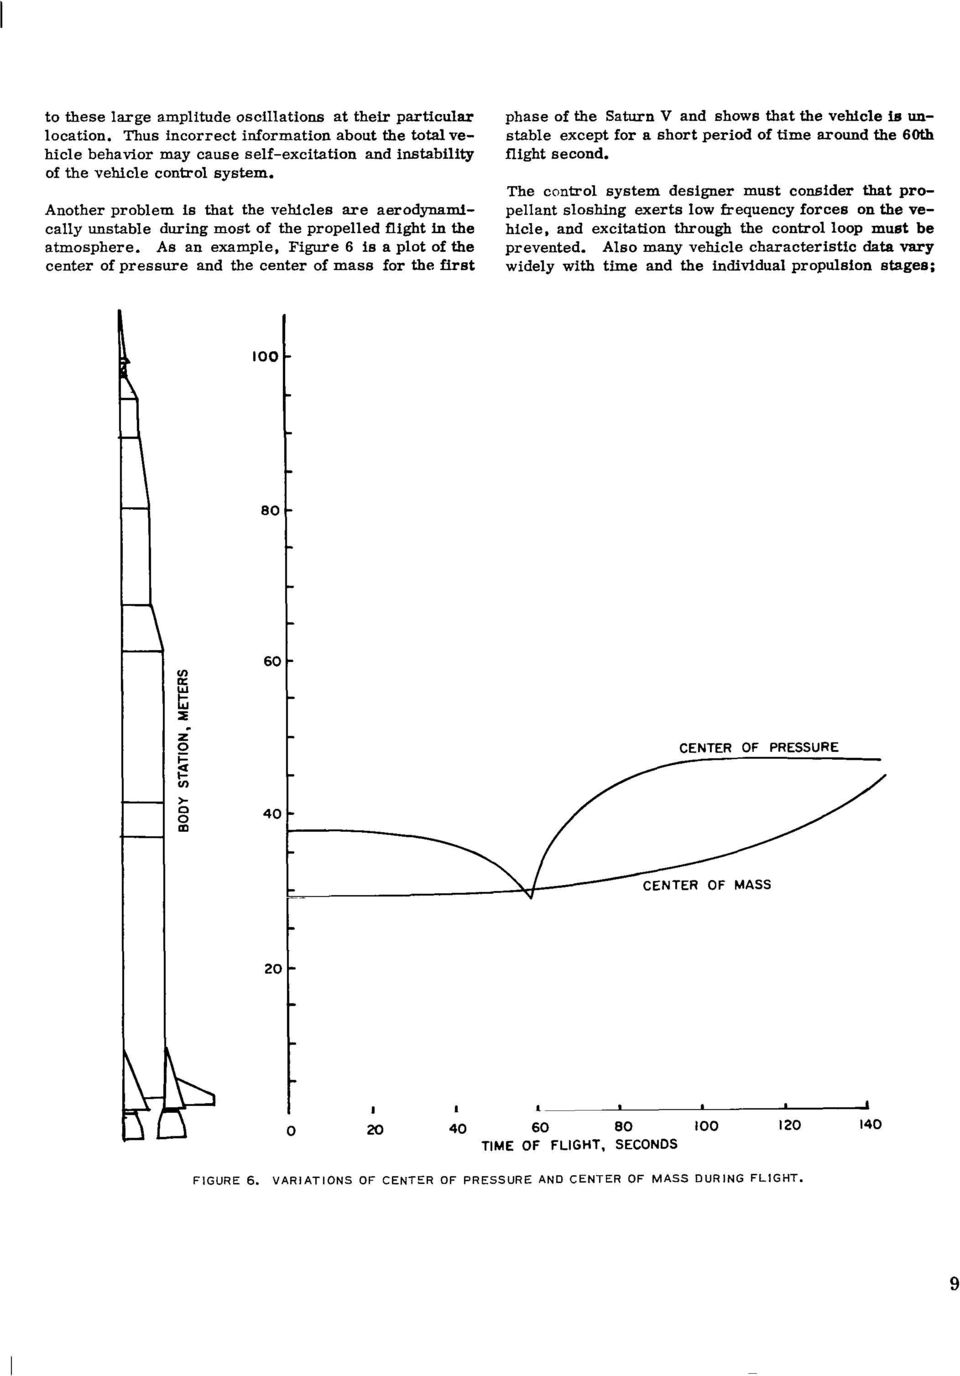 As an example, Figure 6 is a plot of the center of pressure and the center of mass for the first phase of the Saturn V and shows that the vehicle ie unstable except for a short period of time around